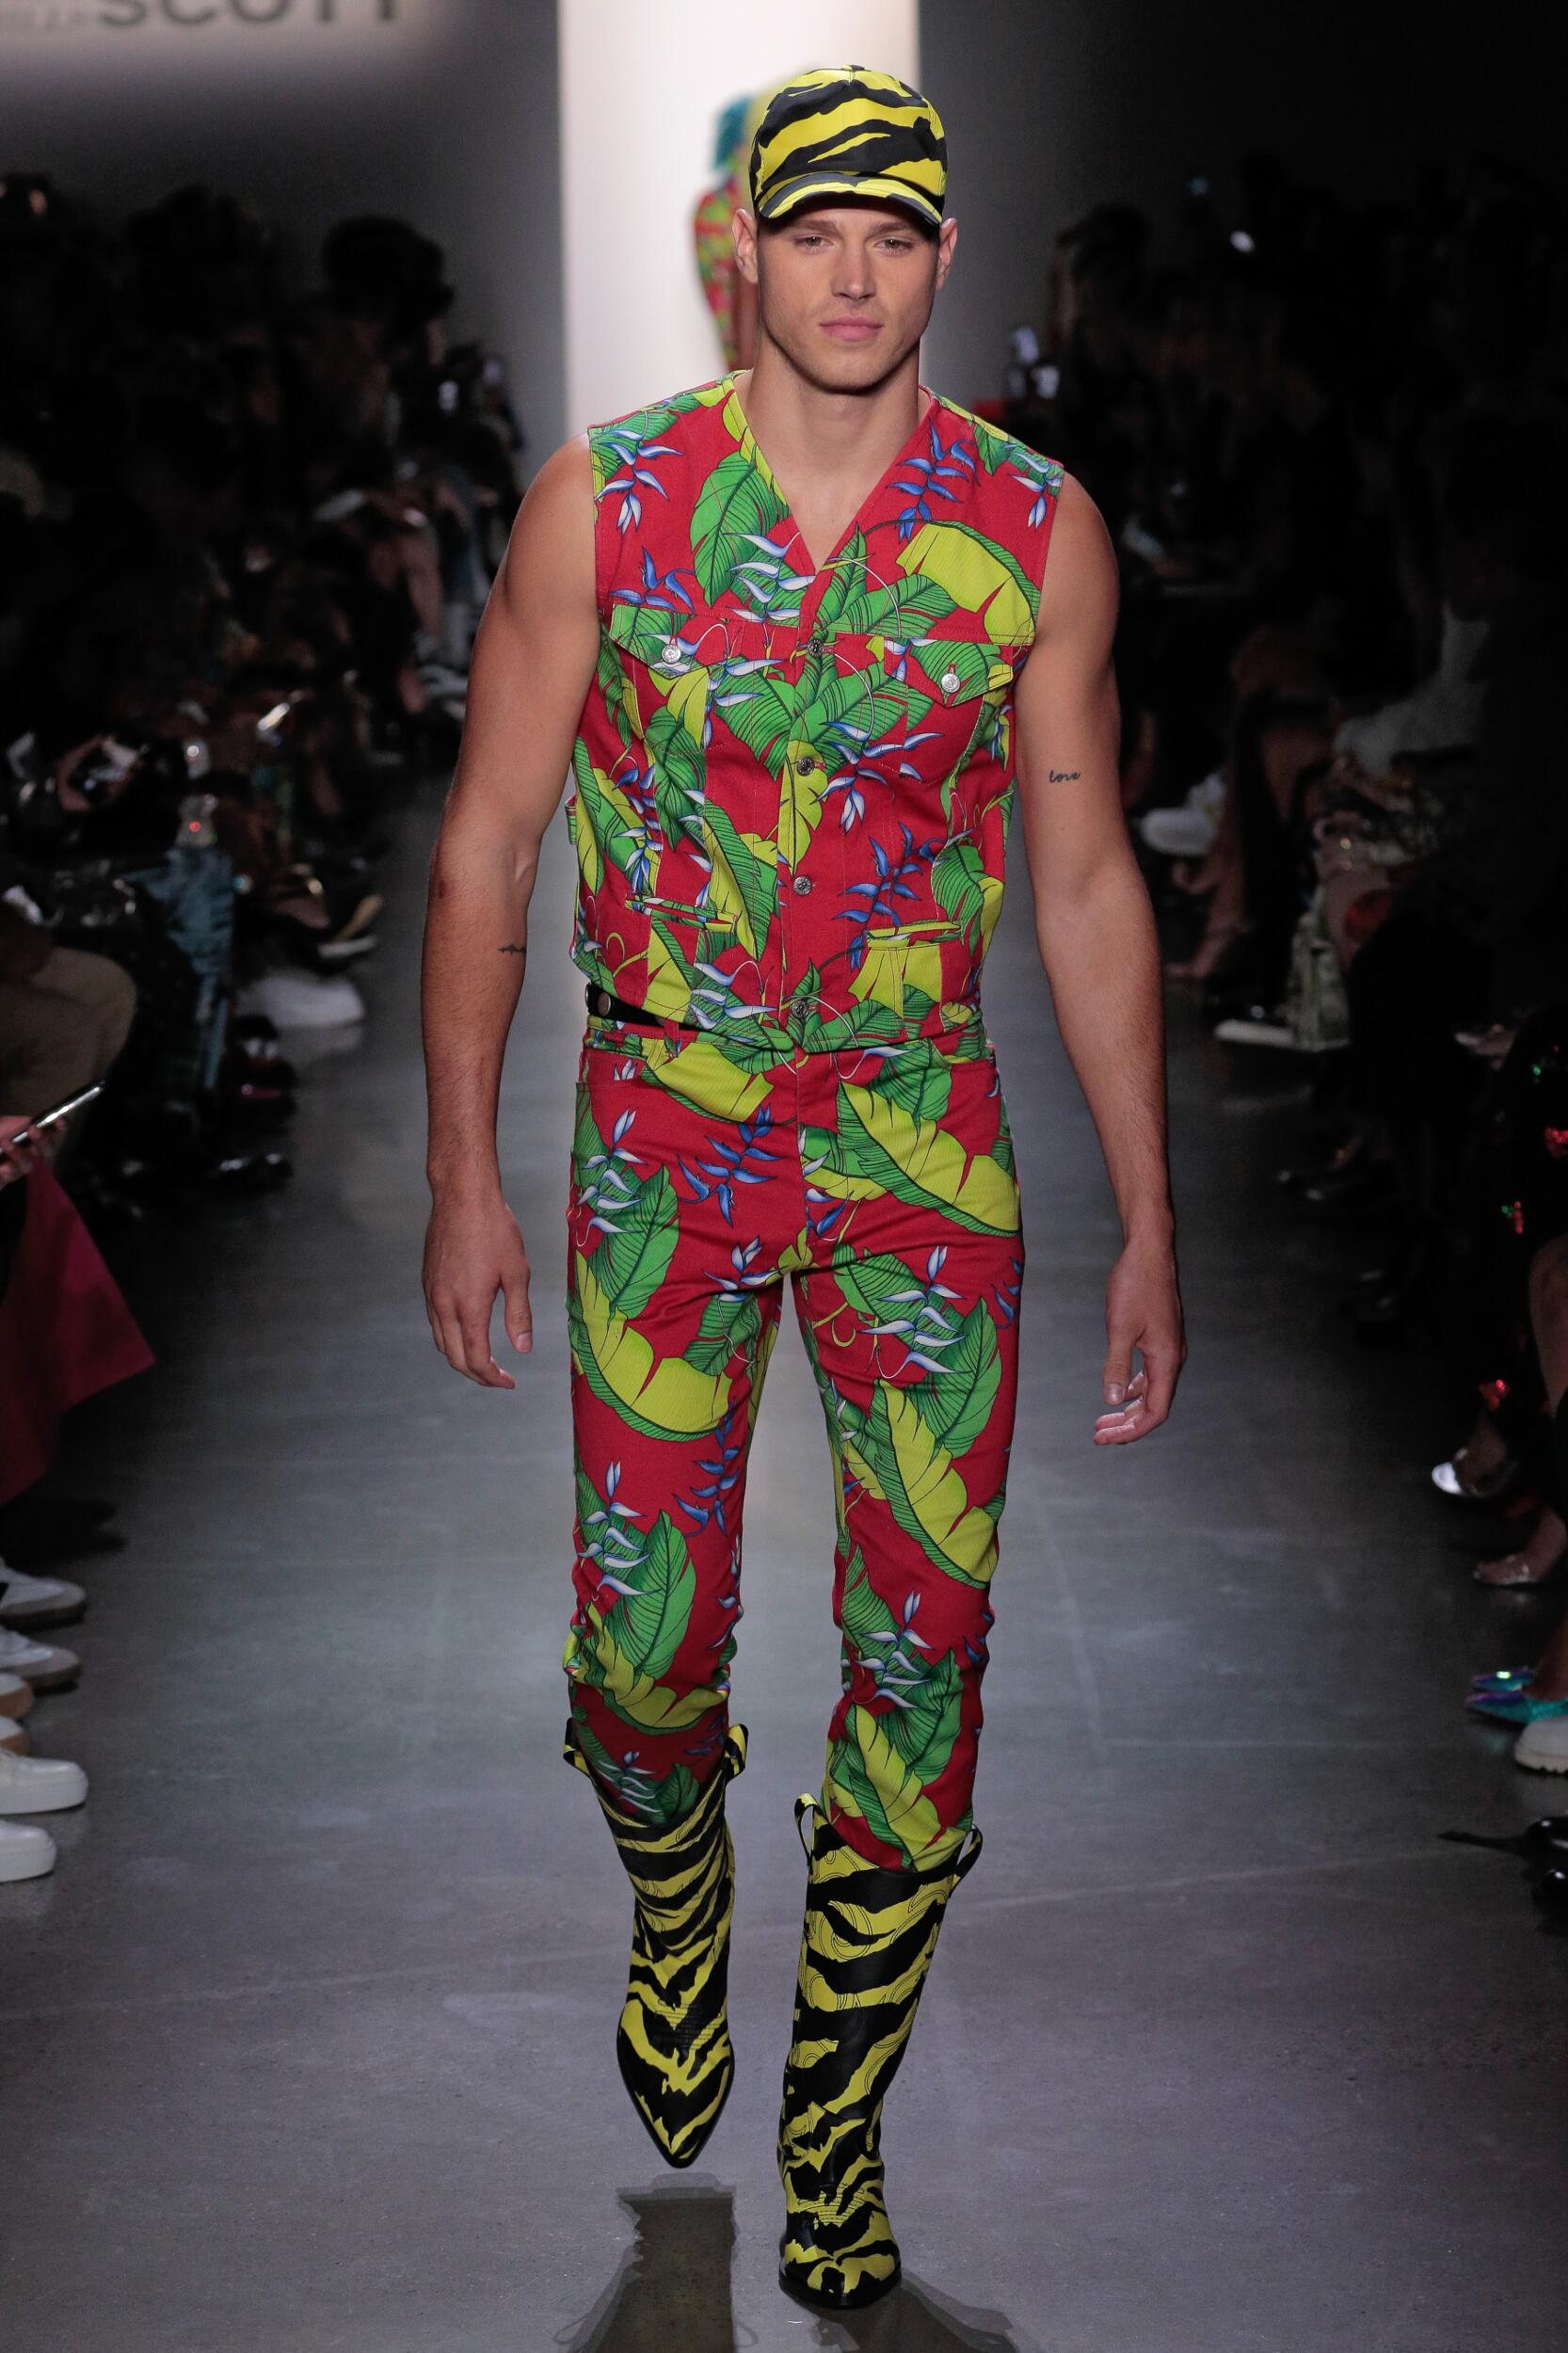 Catwalk Jeremy Scott Summer 2020